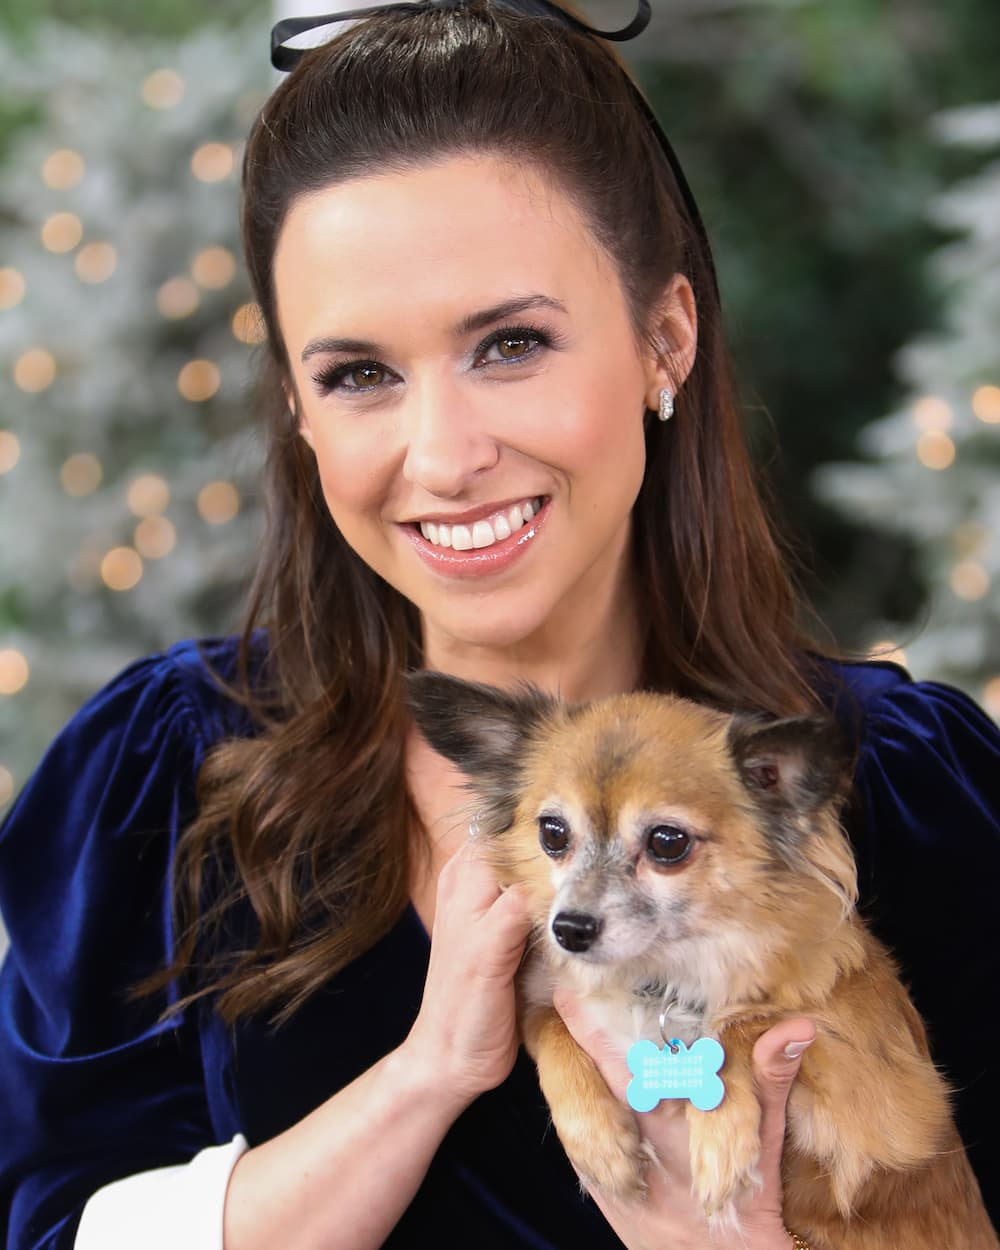 David Nehdar and Lacey Chabert relationship